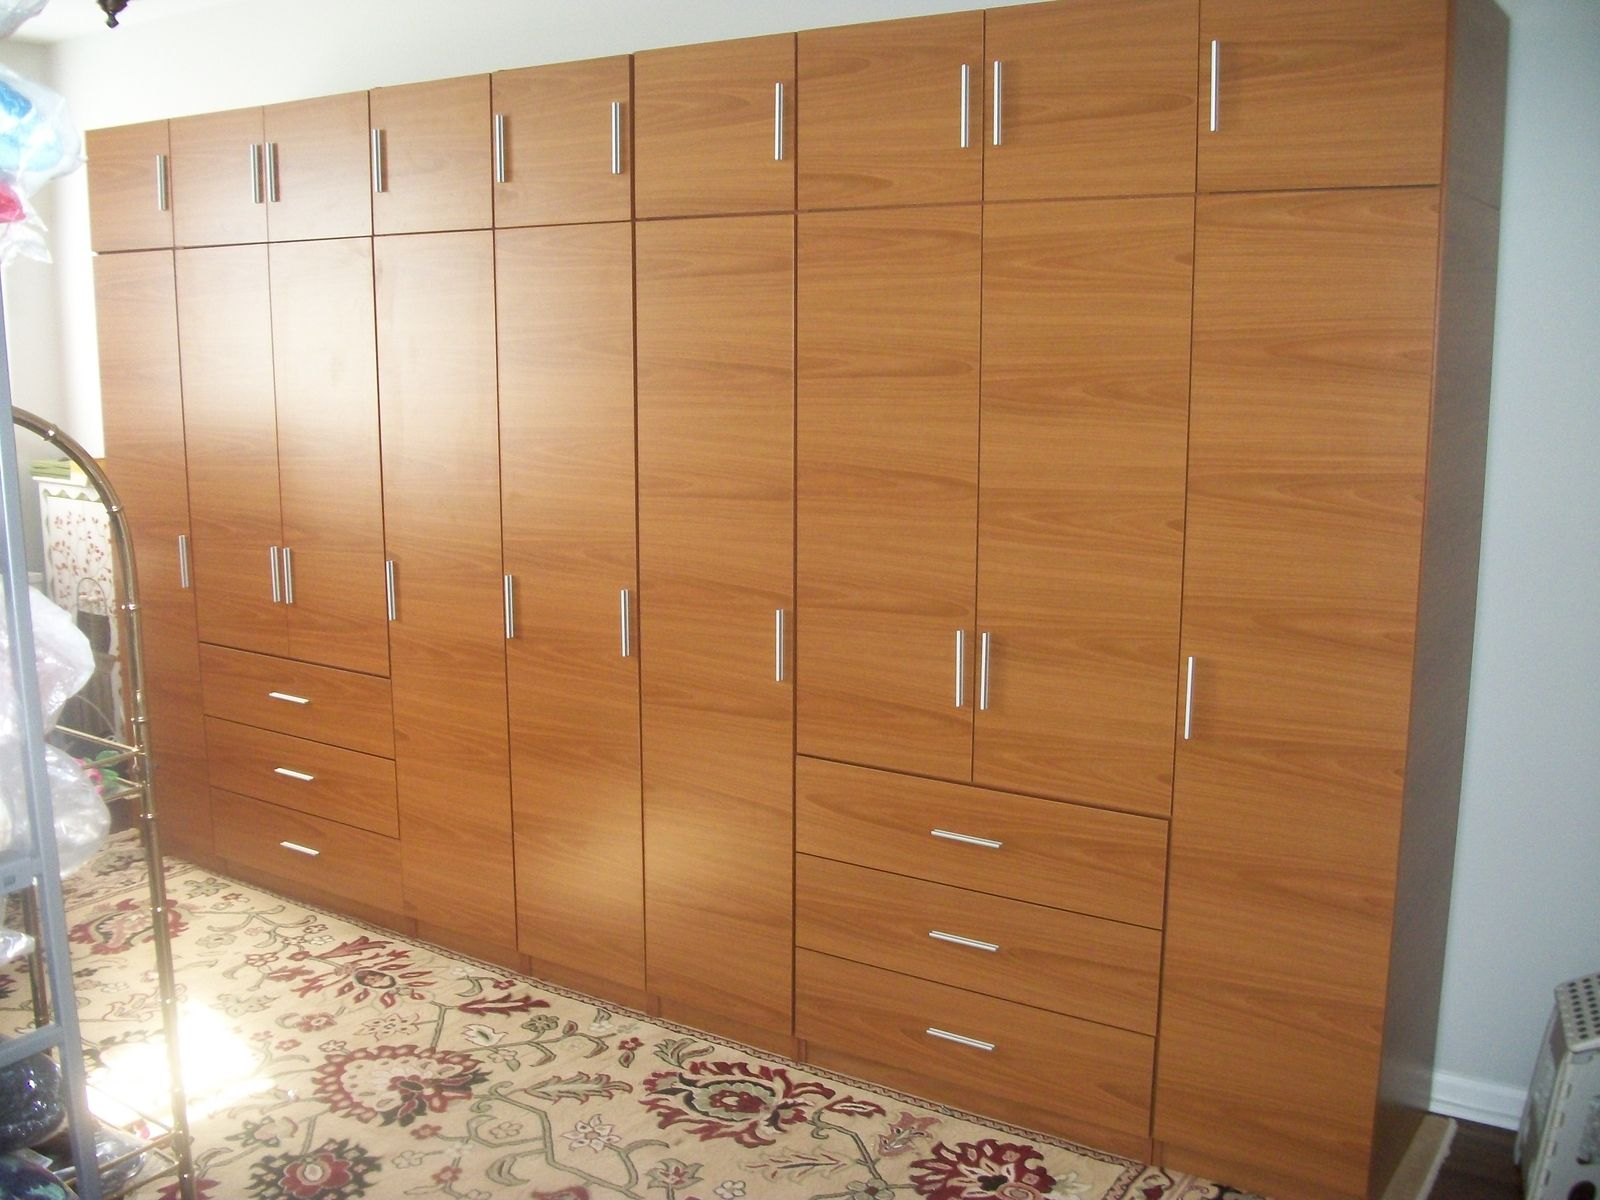 Handmade Honey Maple Matte Finish Complete Wall Wardrobe Closet Storage Solution With A Custom